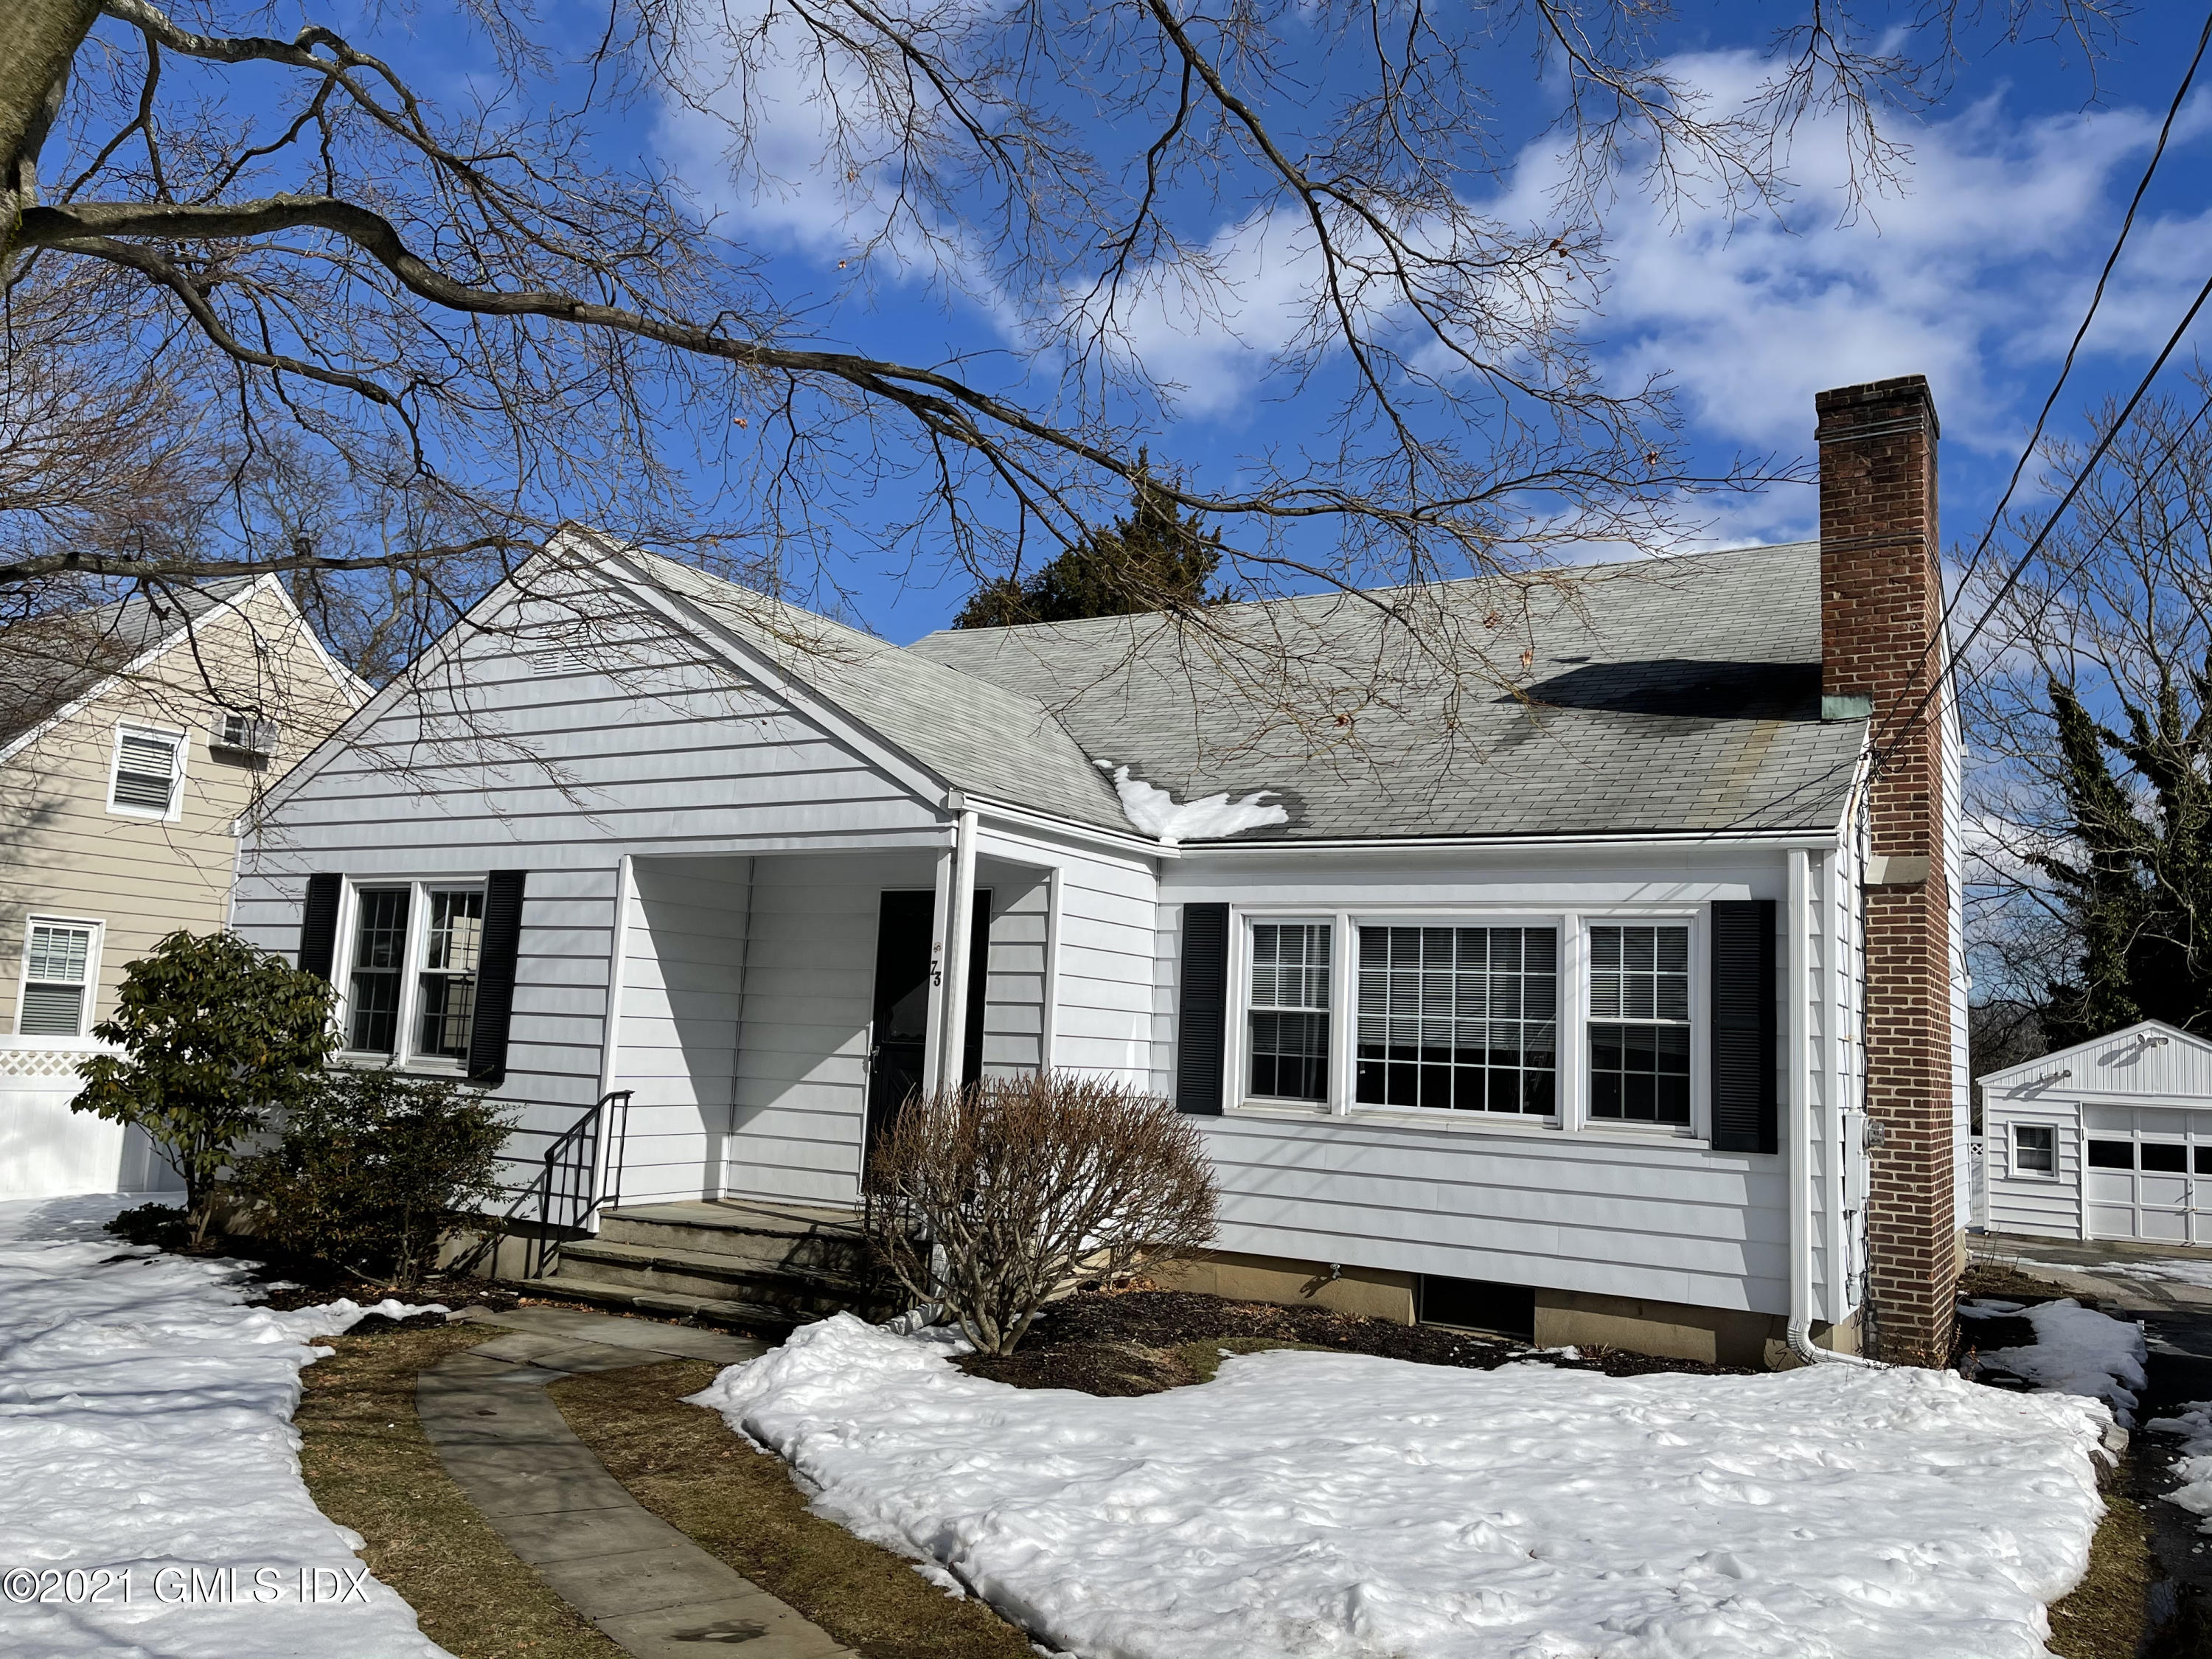 73 Sheephill Road, Riverside, Connecticut 06878, 4 Bedrooms Bedrooms, ,2 BathroomsBathrooms,Single family,For Rent,Sheephill,112212